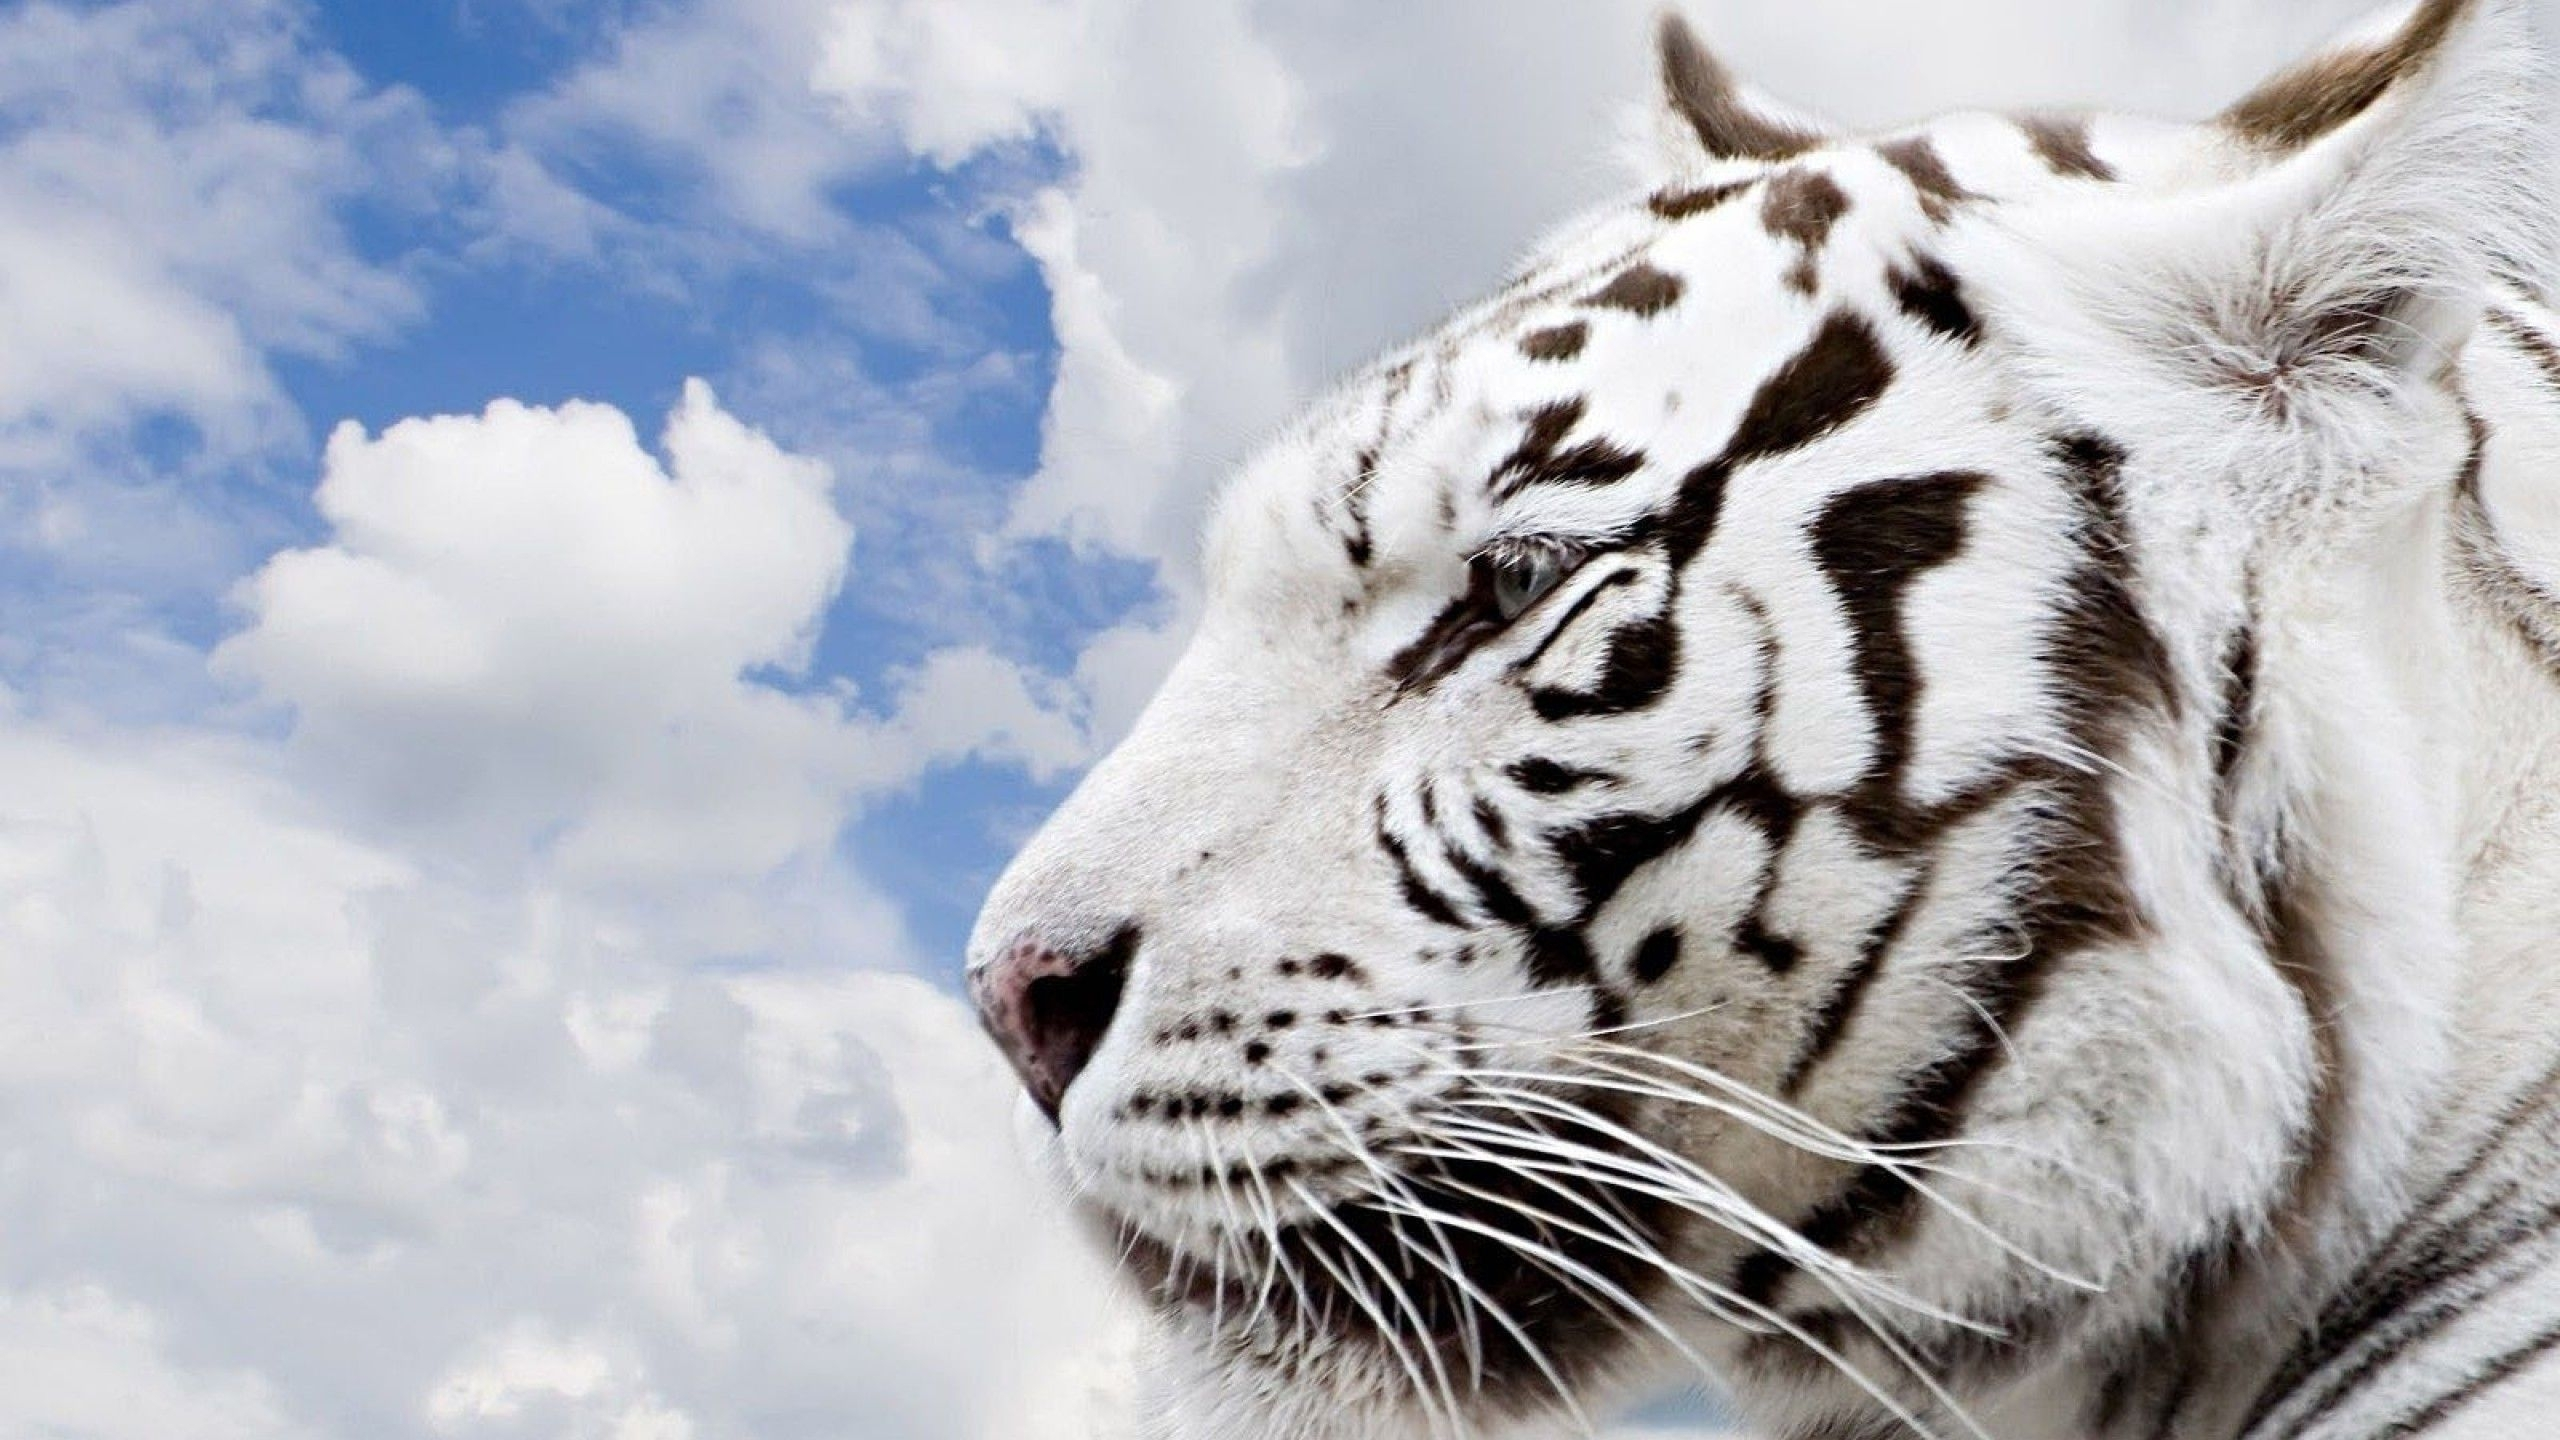 siberian tiger wallpapers - wallpaper cave | images wallpapers